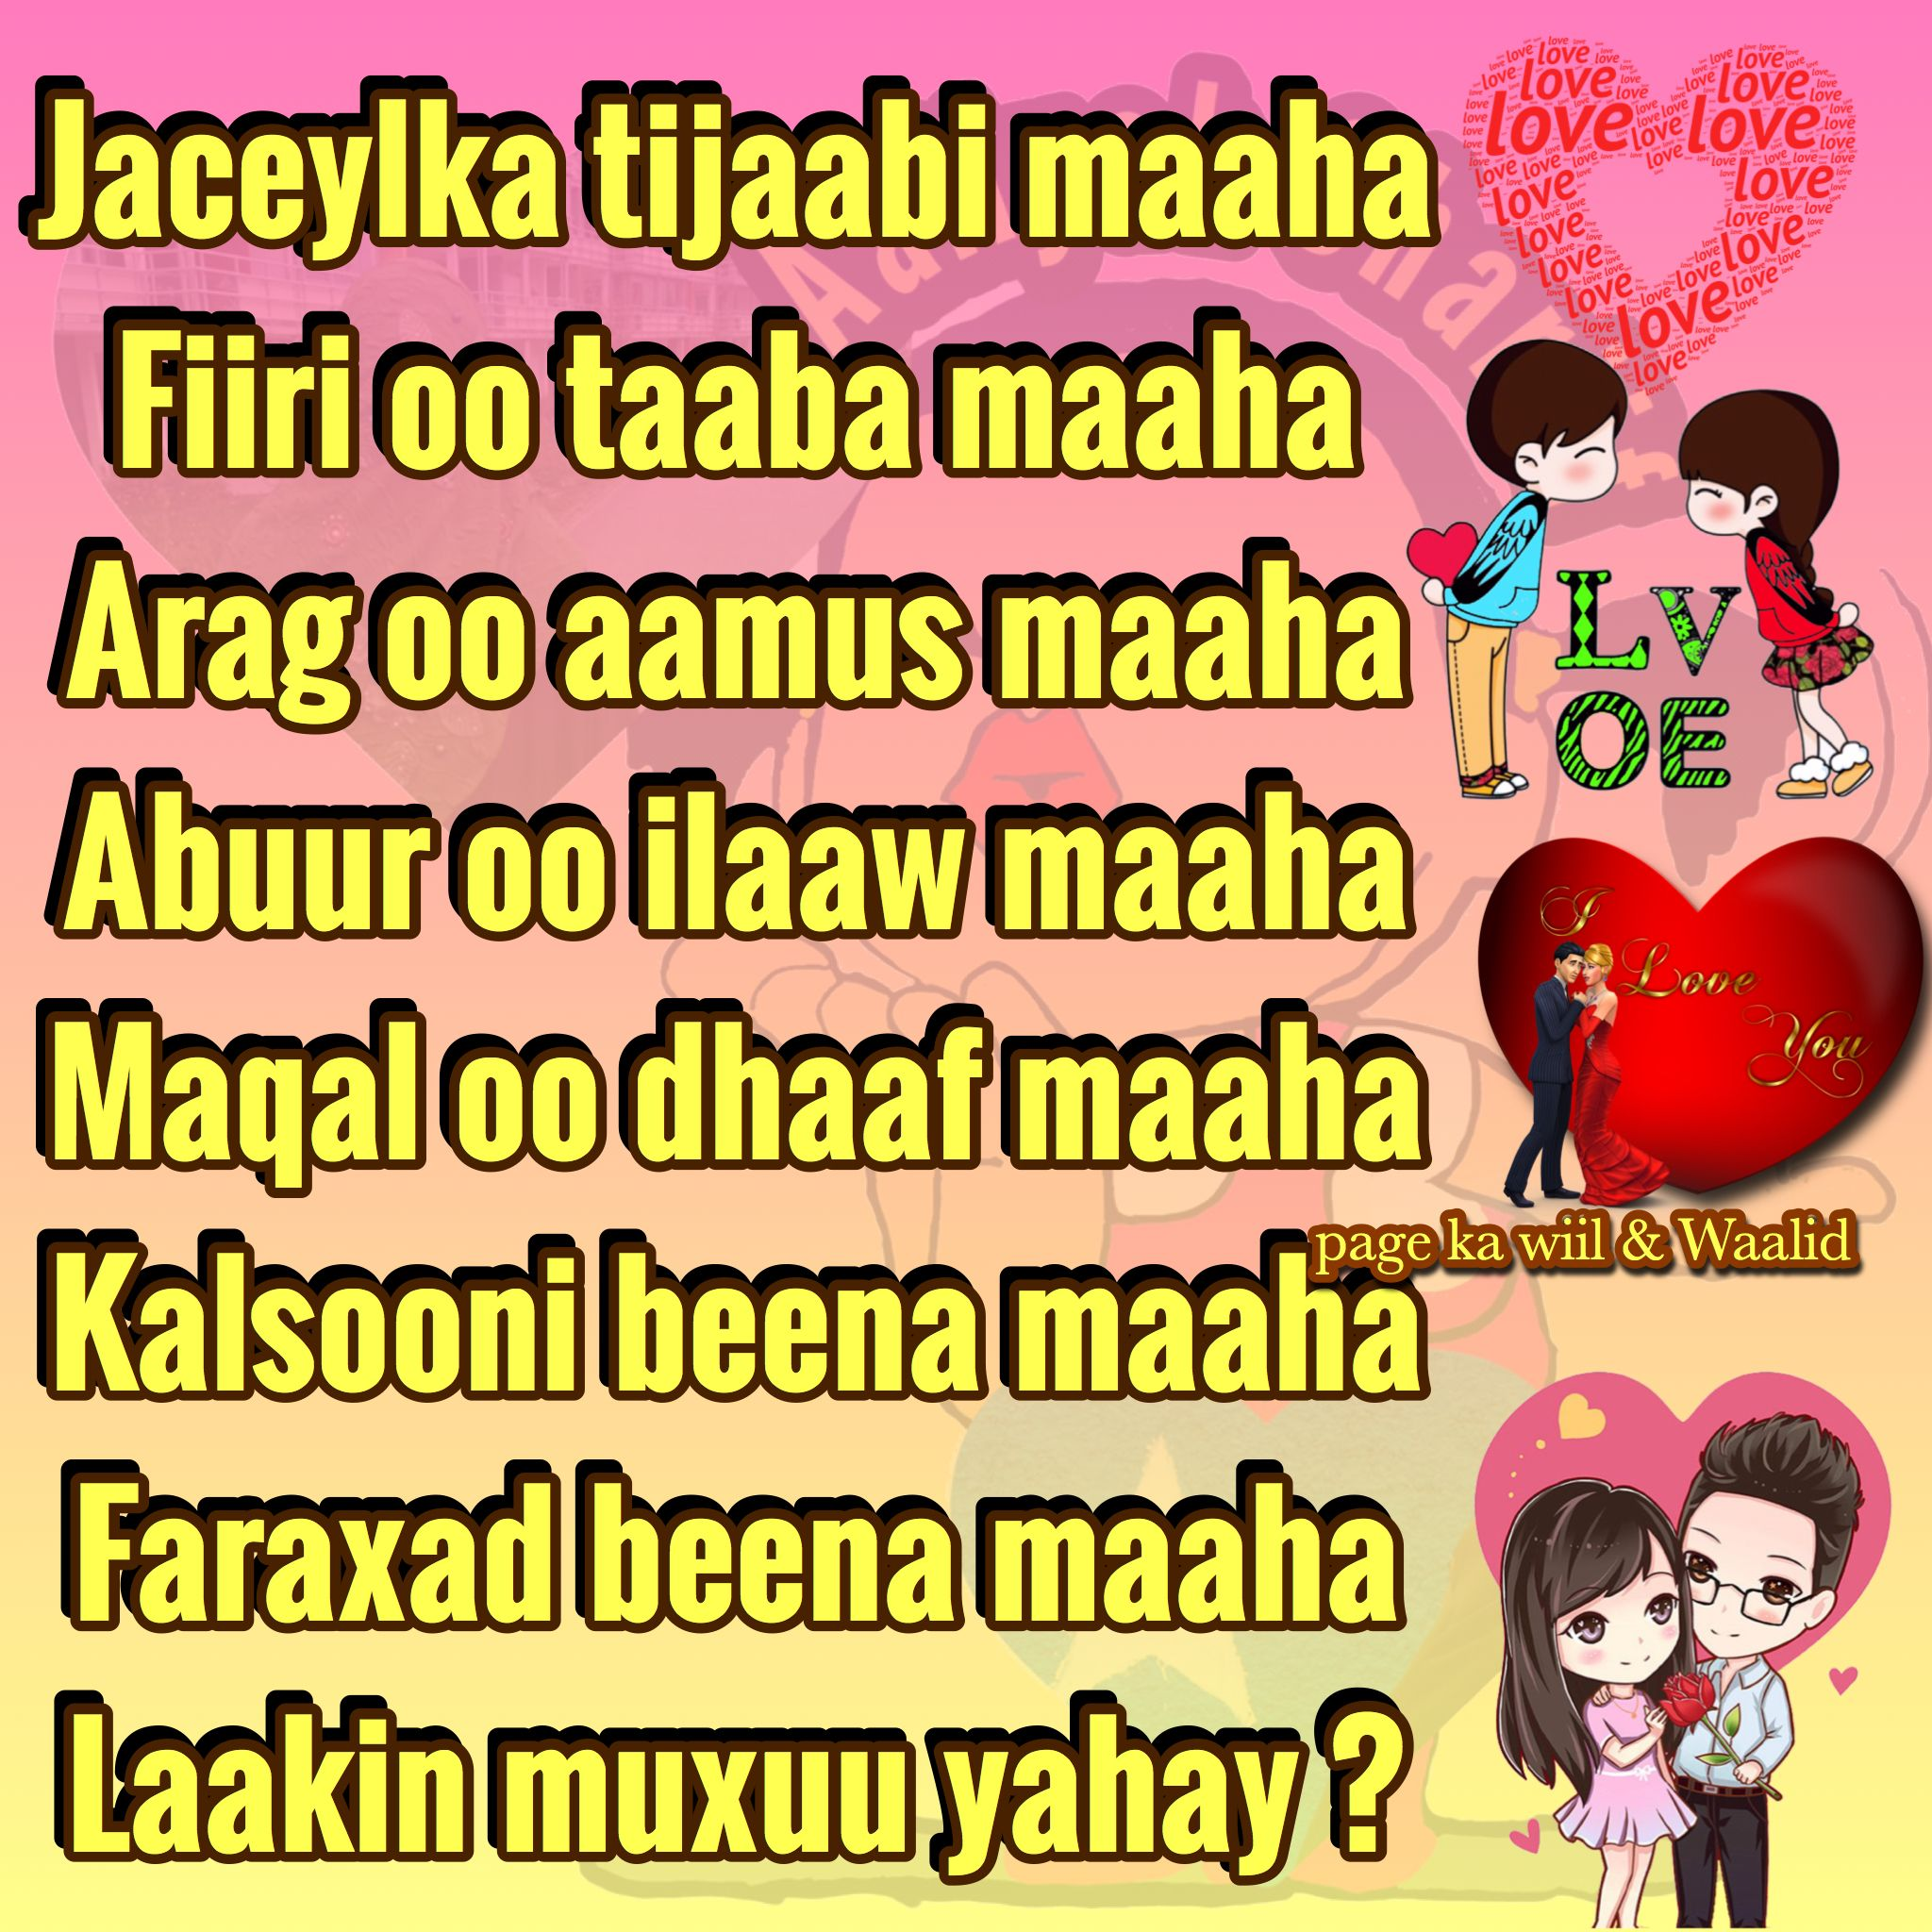 Pin By Mohamed Abdi On Somali Somali Quotes Love You Quotes